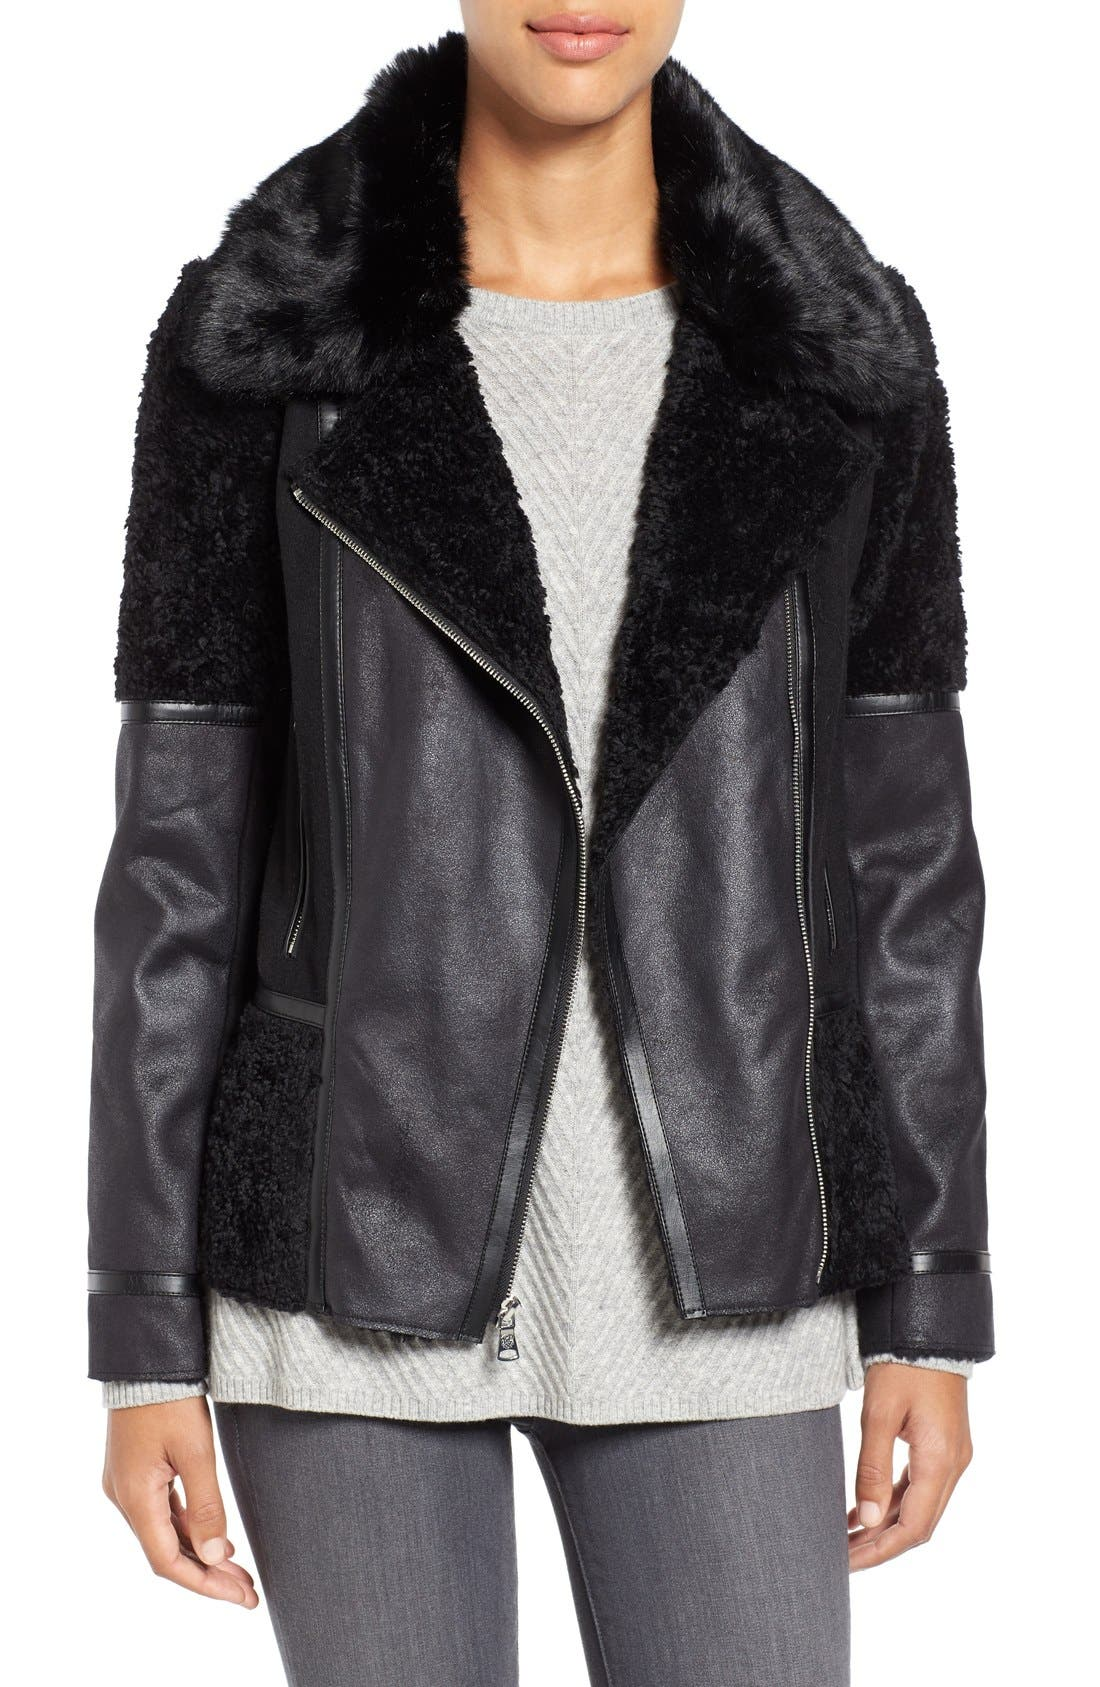 Main Image - Vince Camuto Mixed Media Faux Shearling Moto Jacket